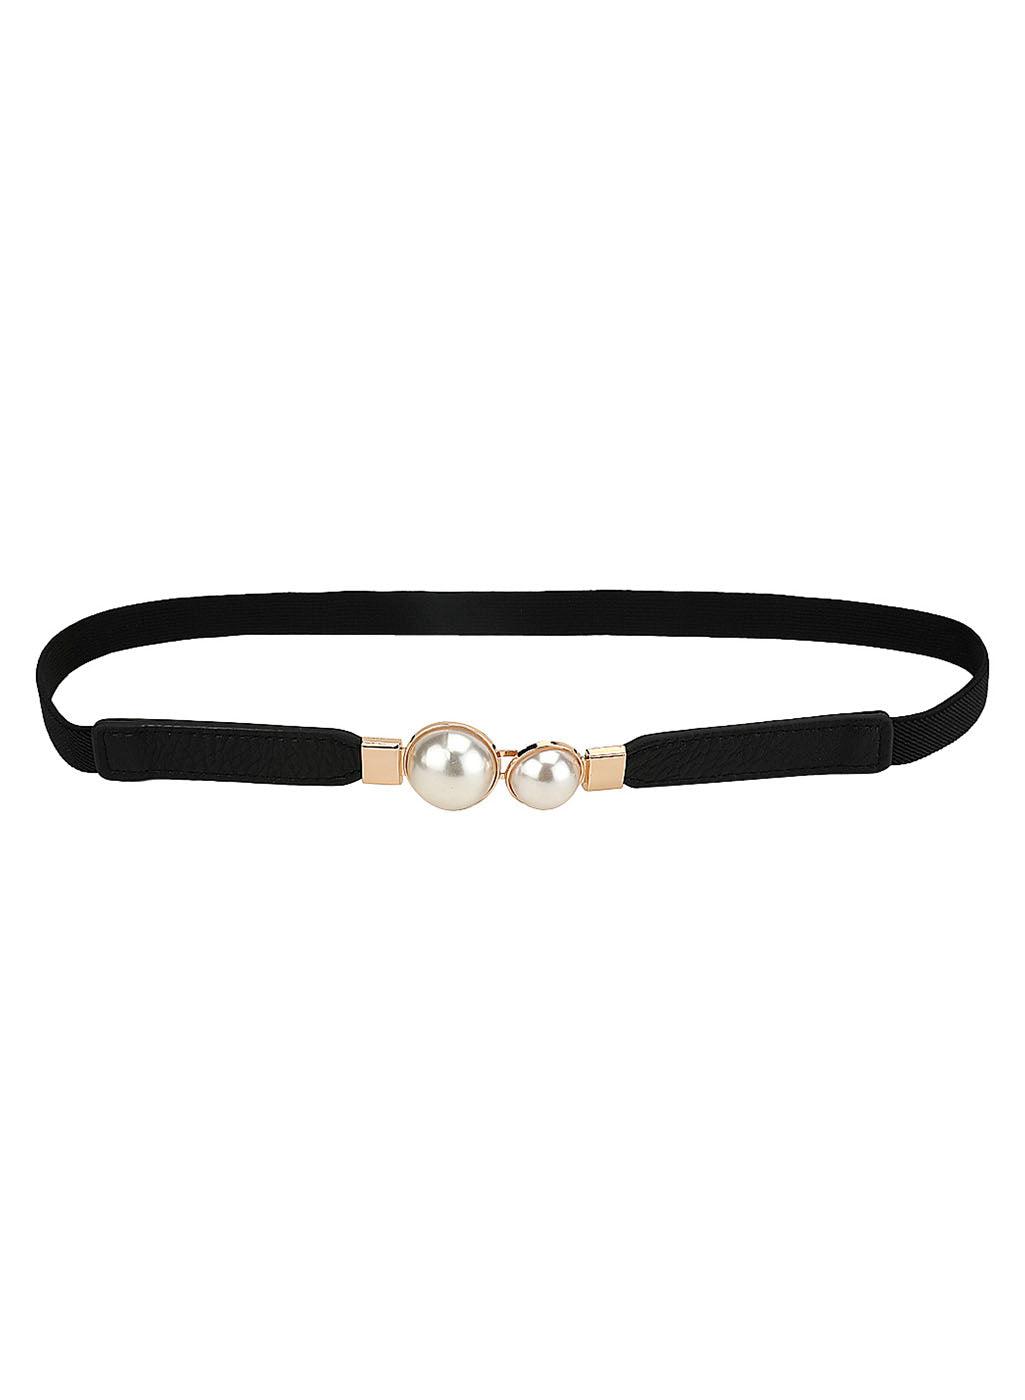 Pearl Detail Belt